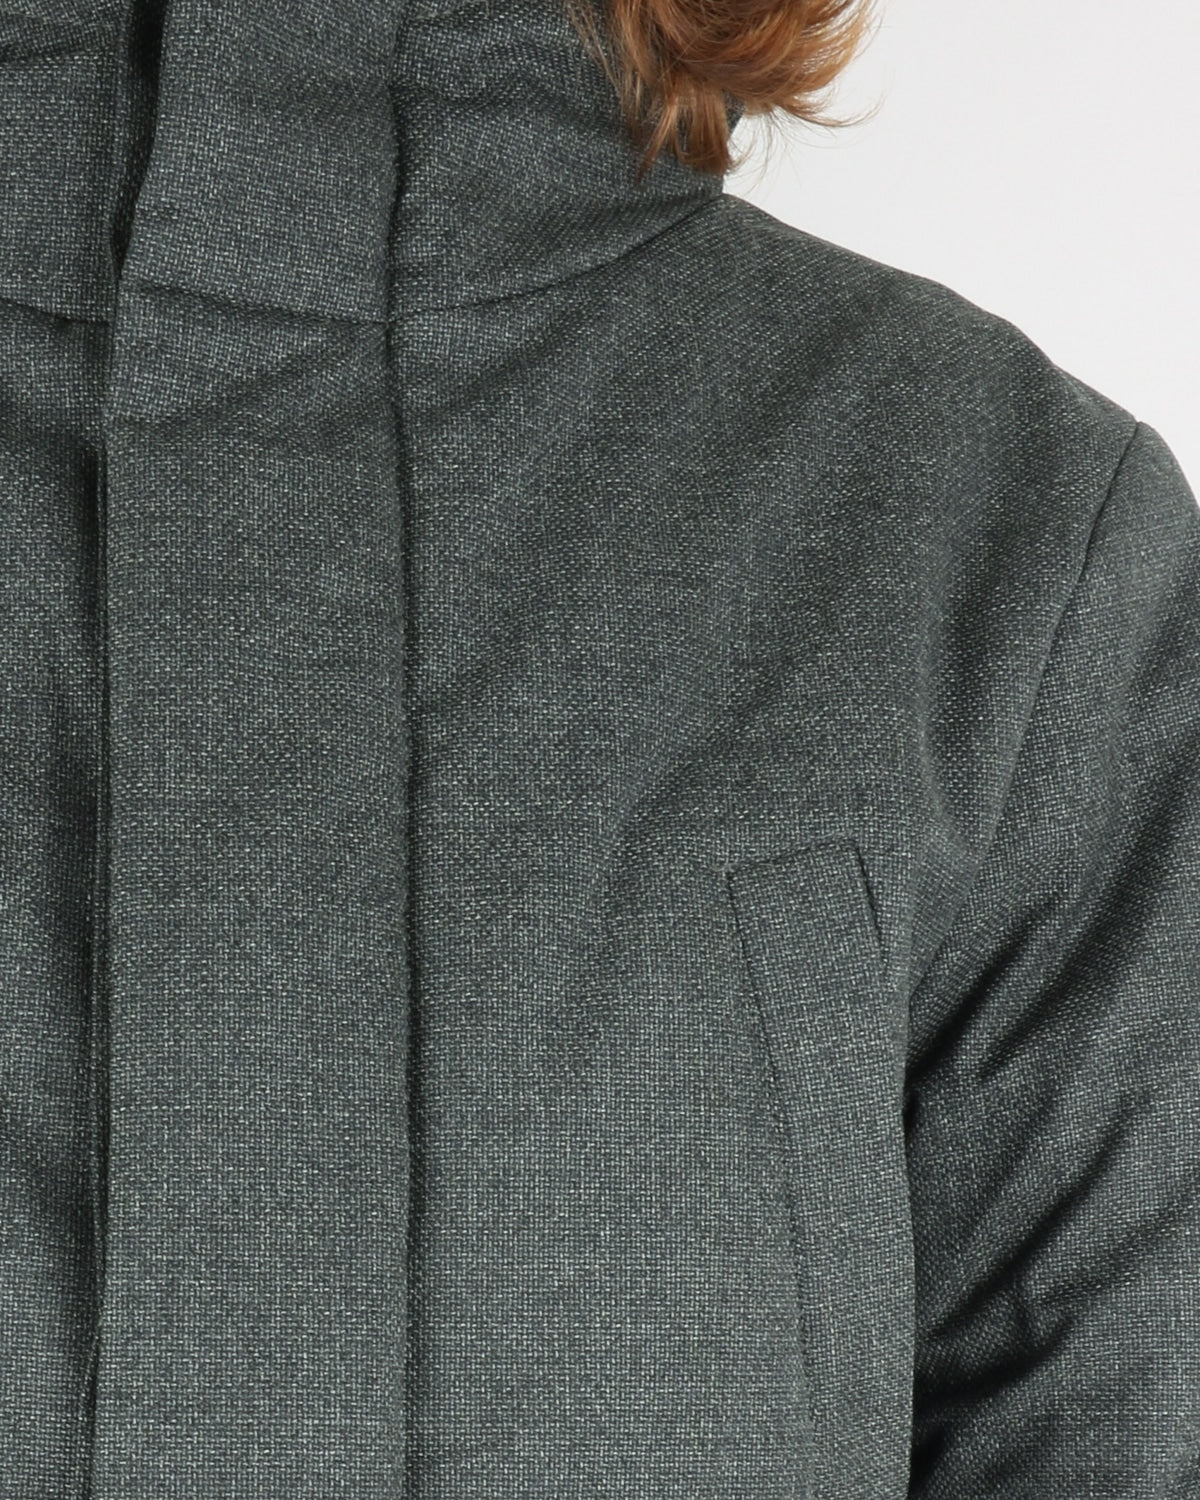 journal clothing_million coat_grey_view_4_5